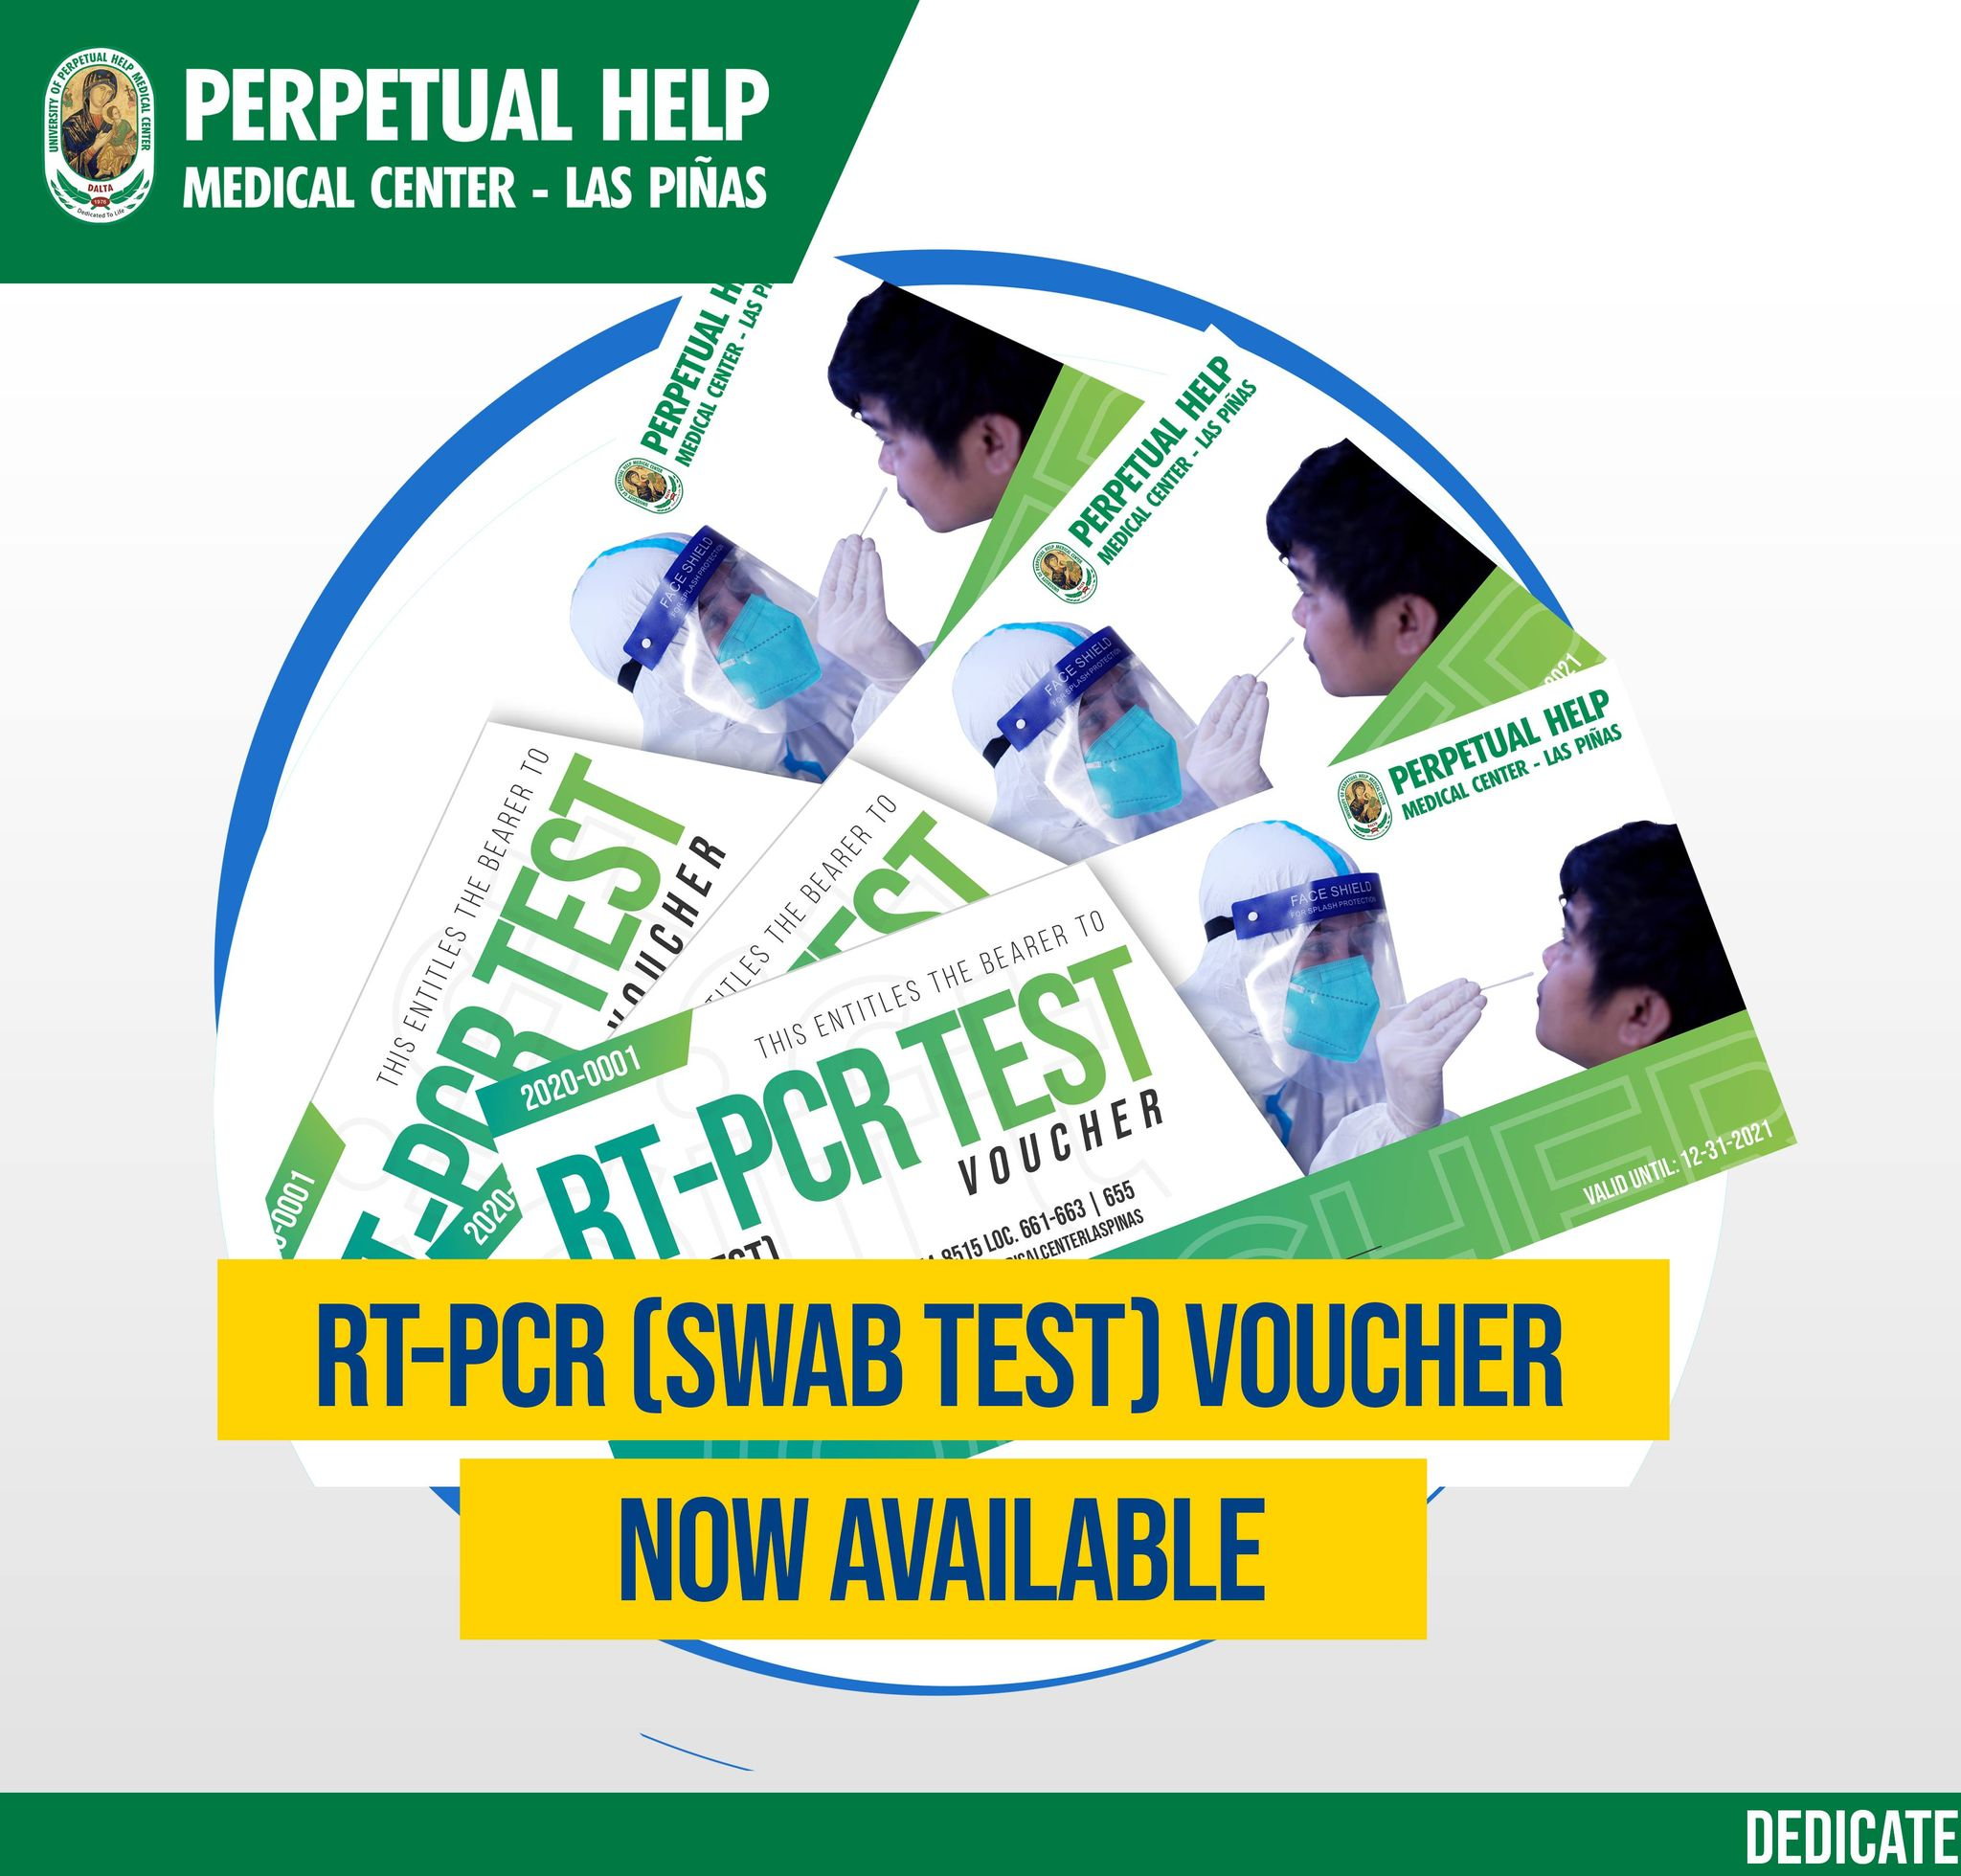 Voucher Announcement Rtpcr Front